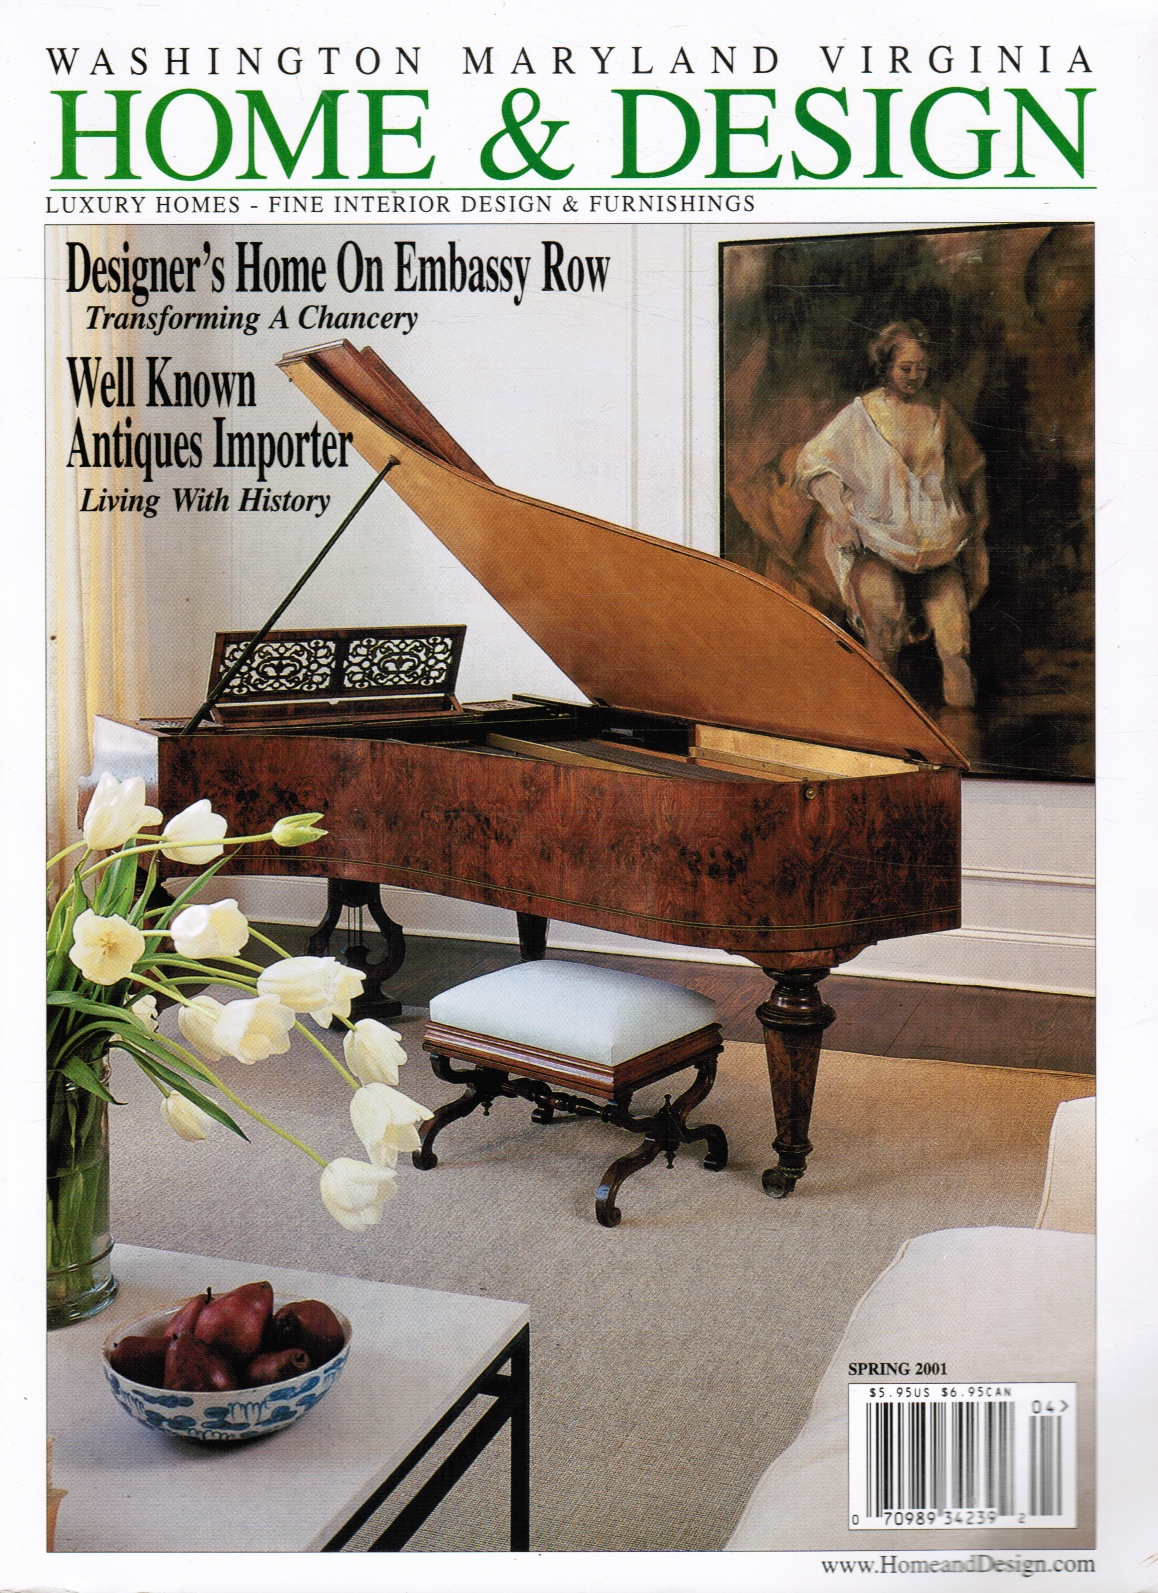 Image for Home & Design: Spring 2001 Luxury Homes - Fine Interior Design & Furnishings